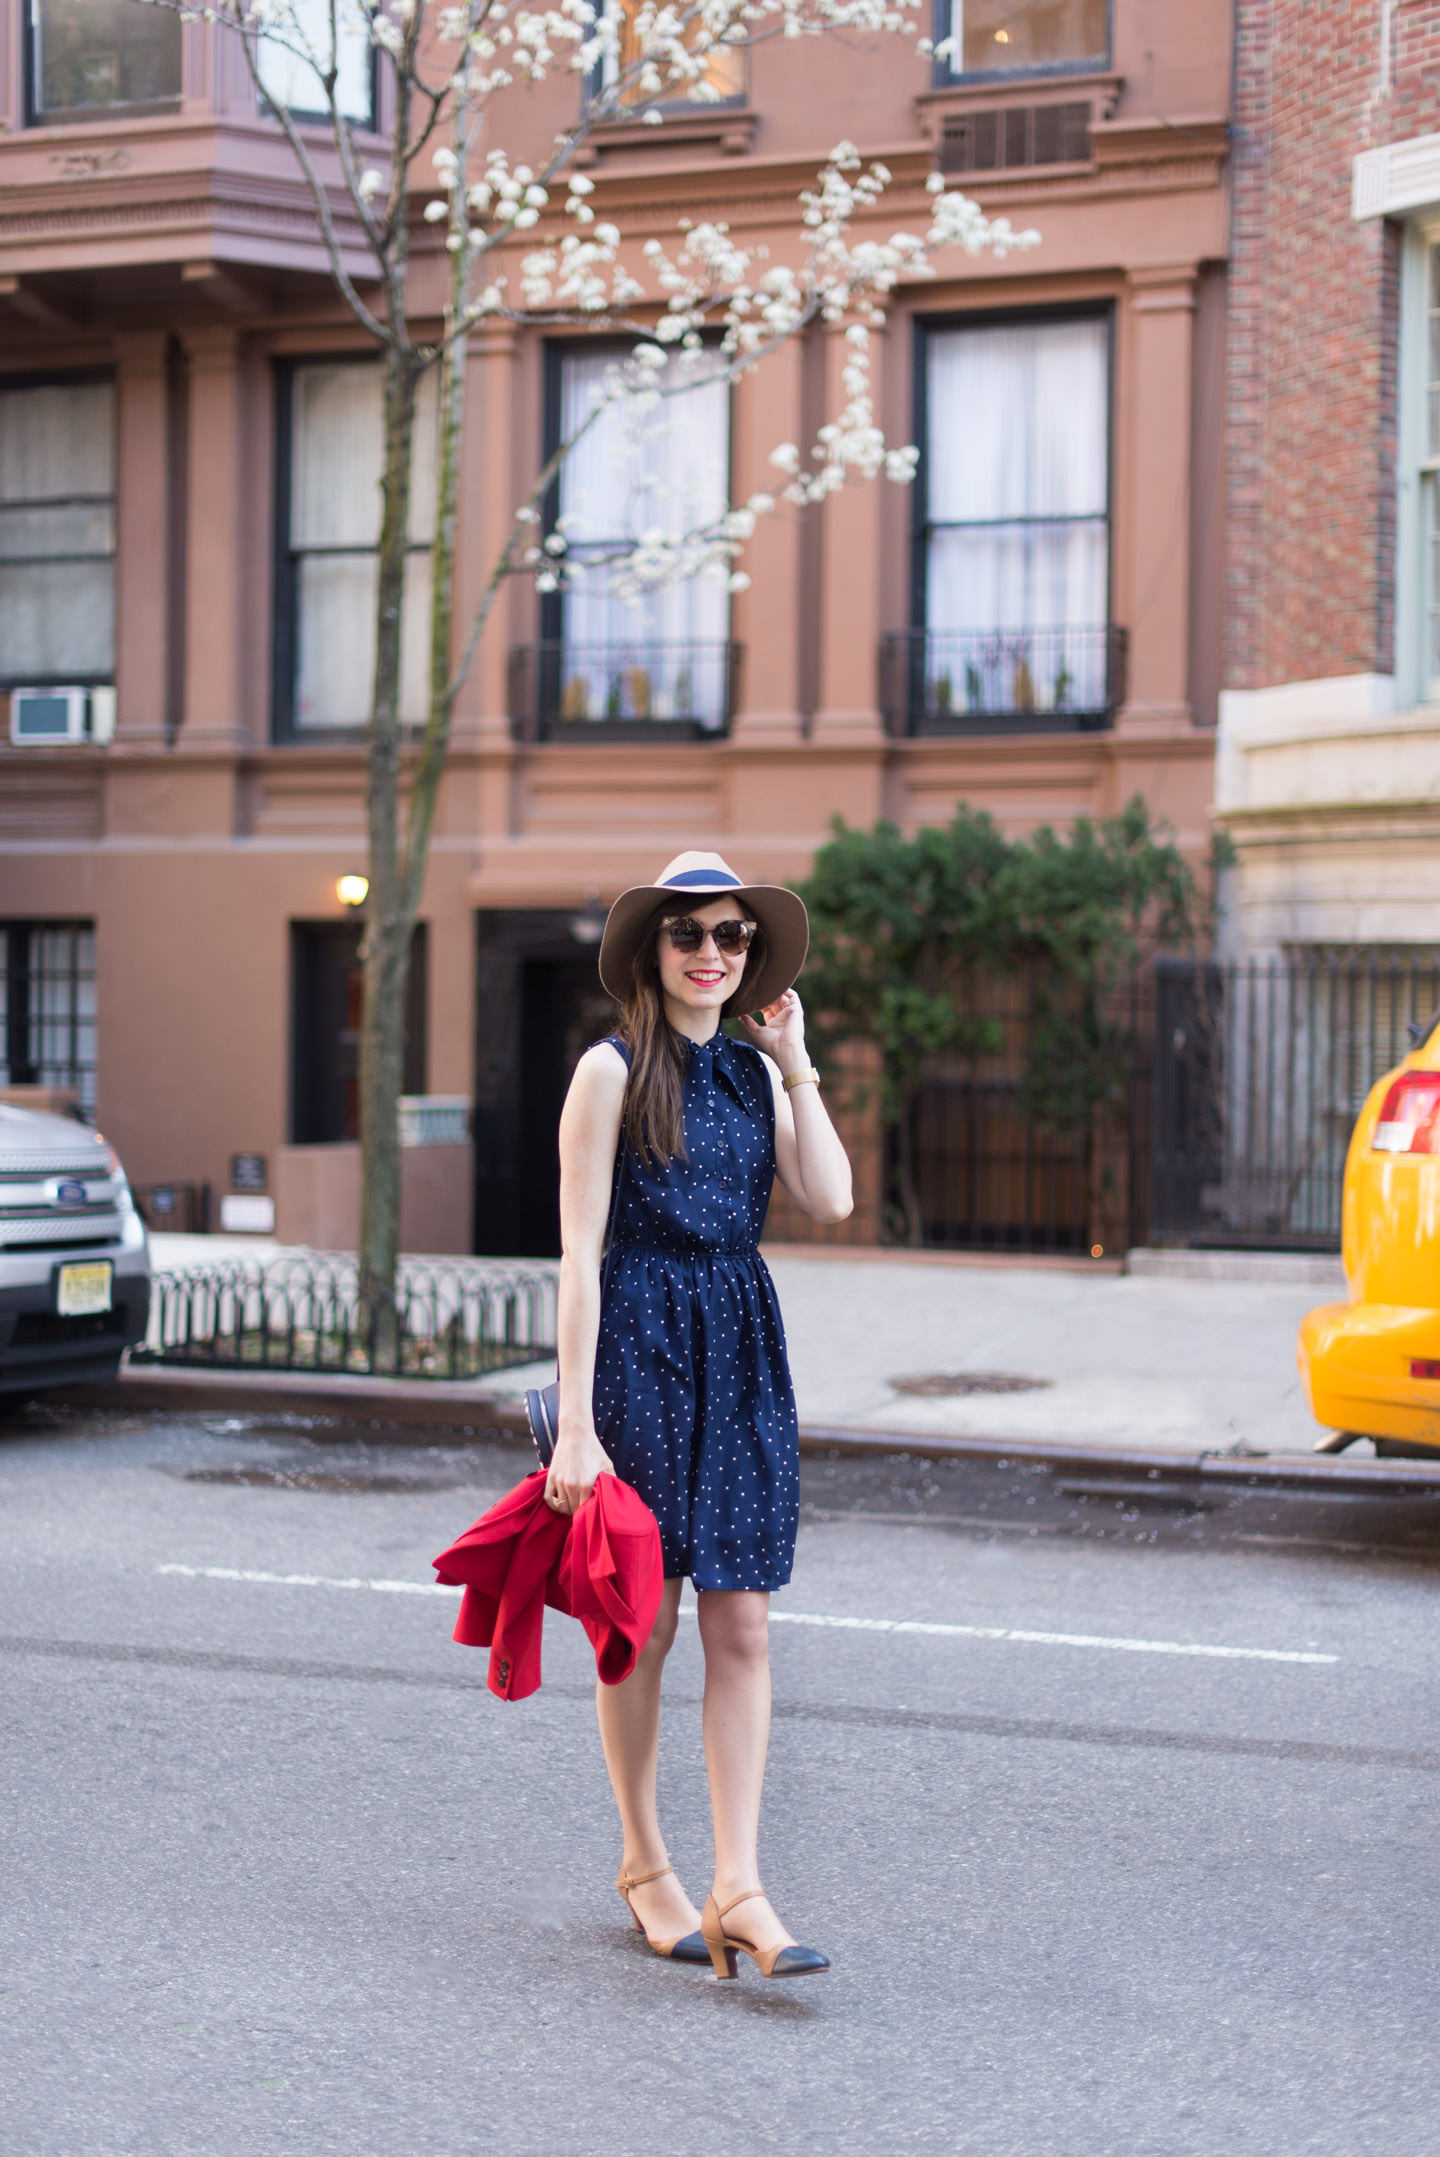 Blog-Mode-And-The-City-Lifestyle-New-York-Air-France-Jean-Imbert02-5